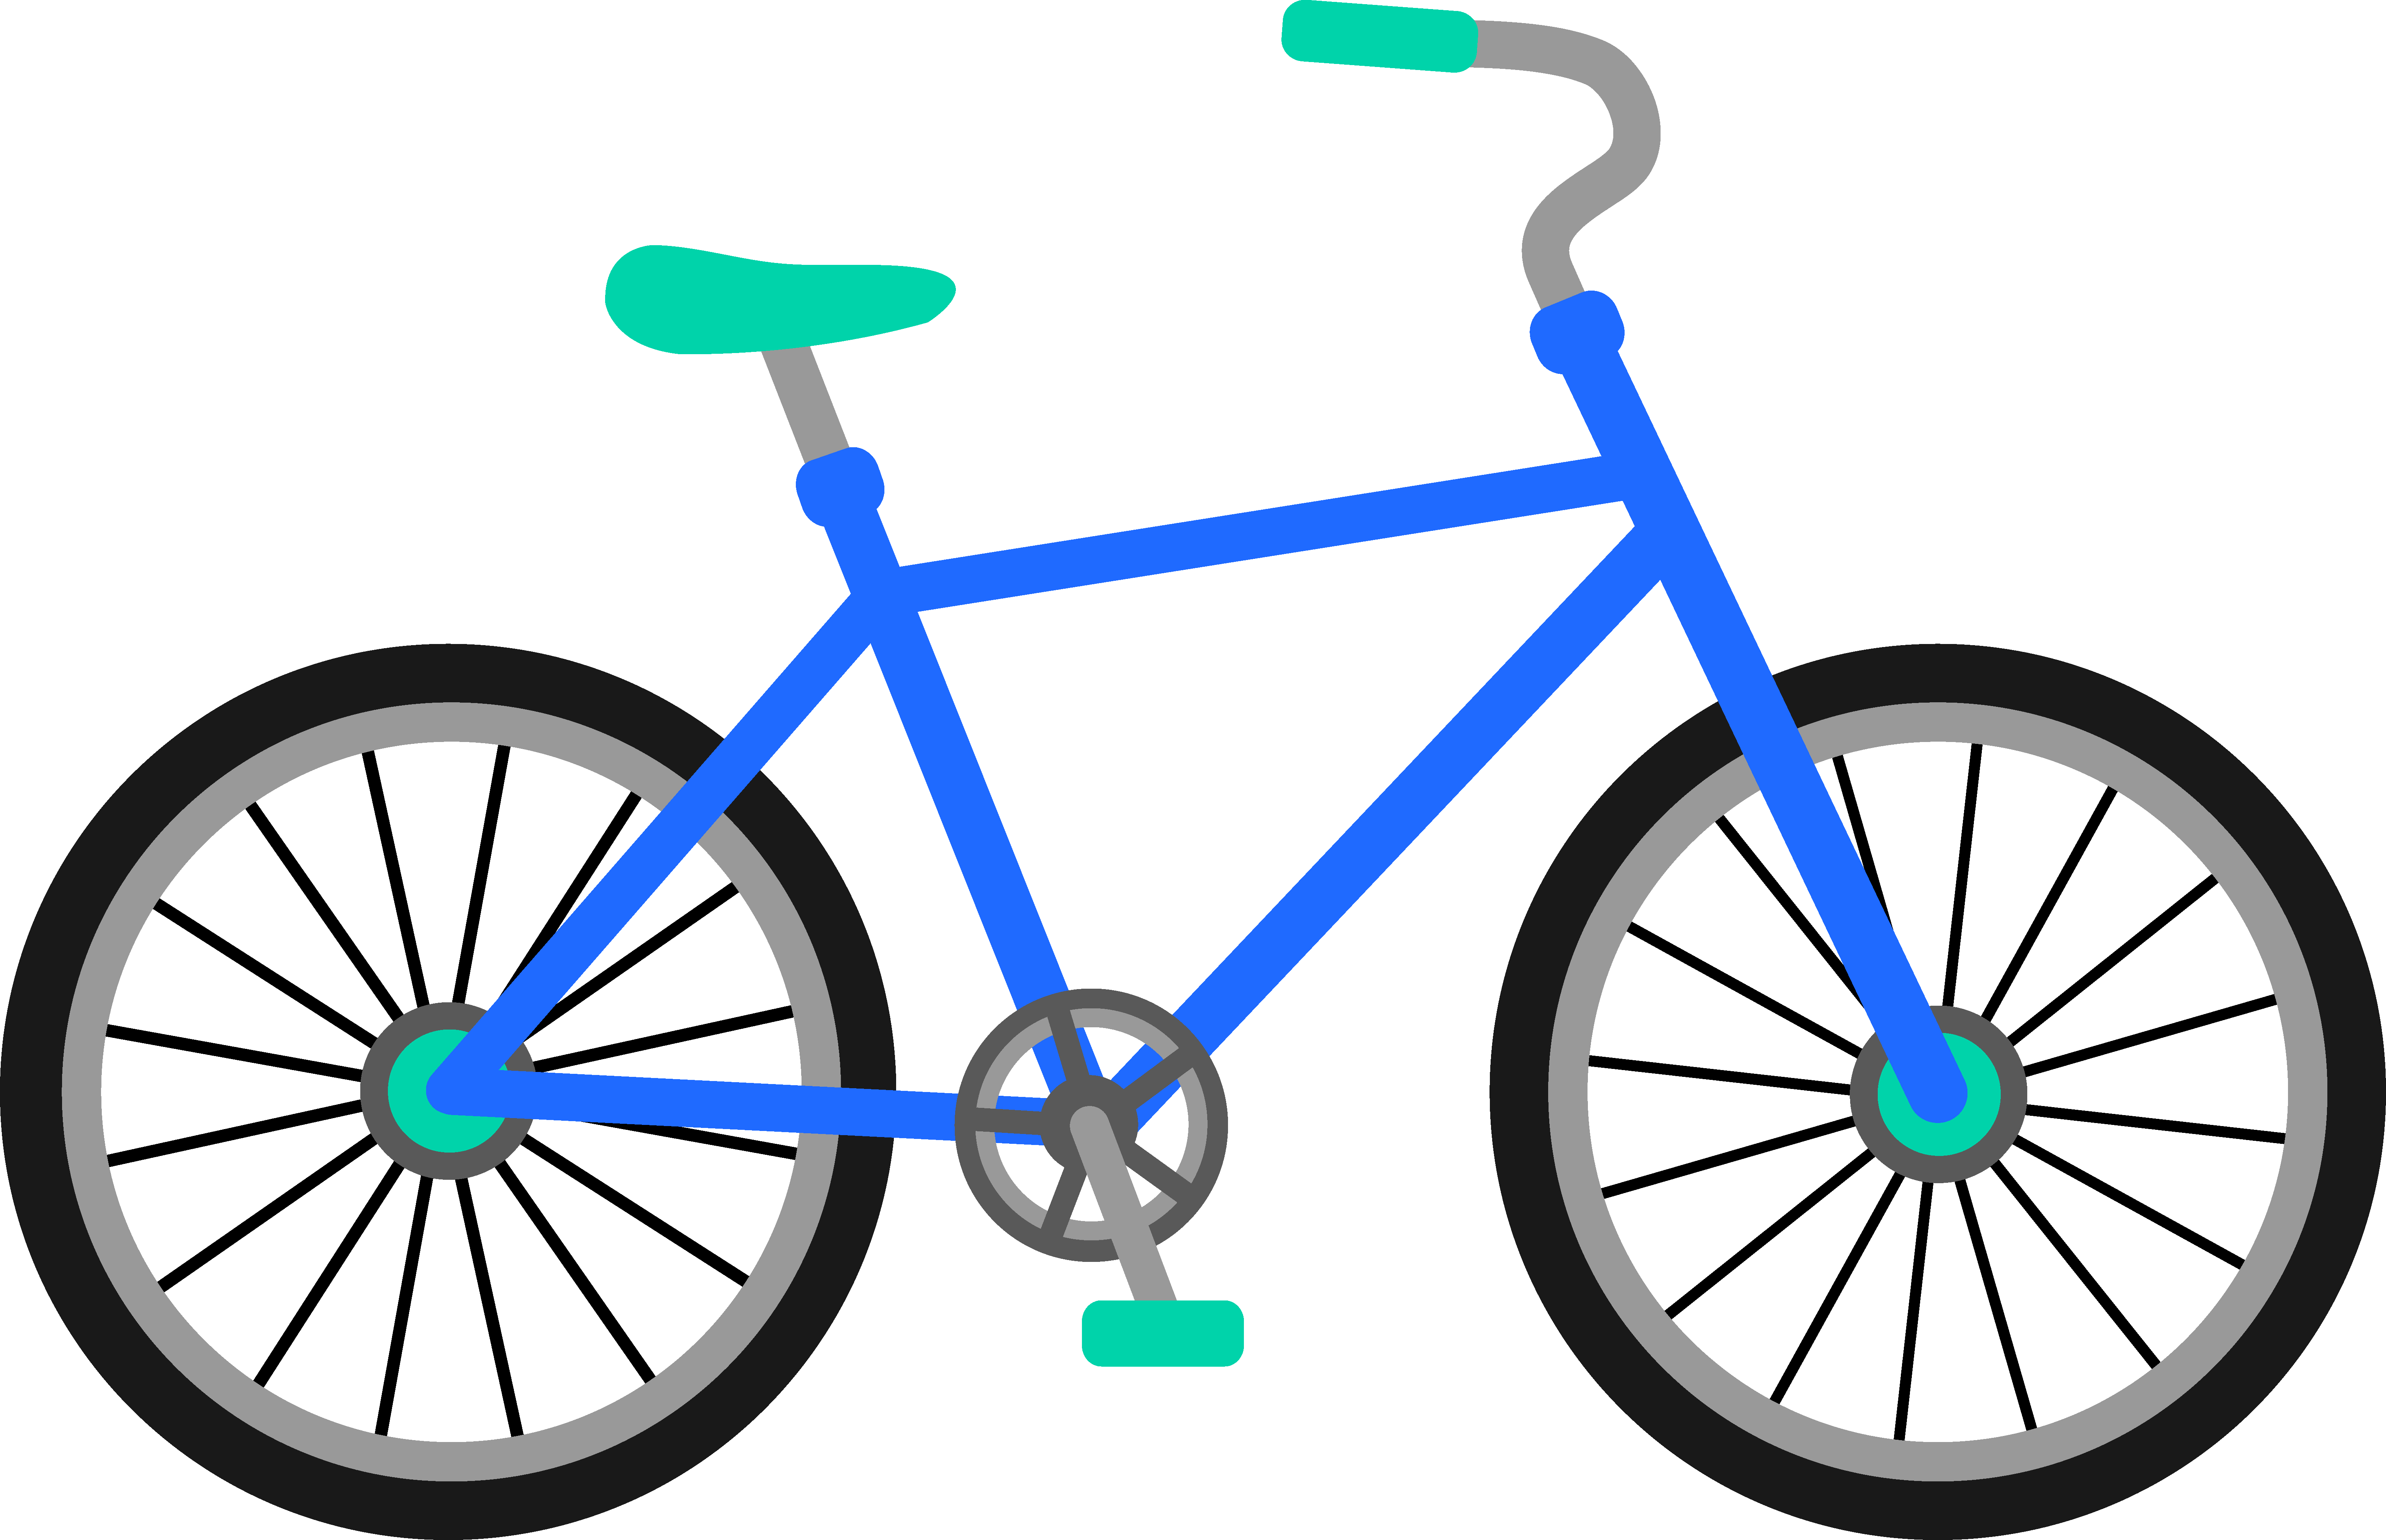 Clipart bicycle green bike. Hd png transparent images